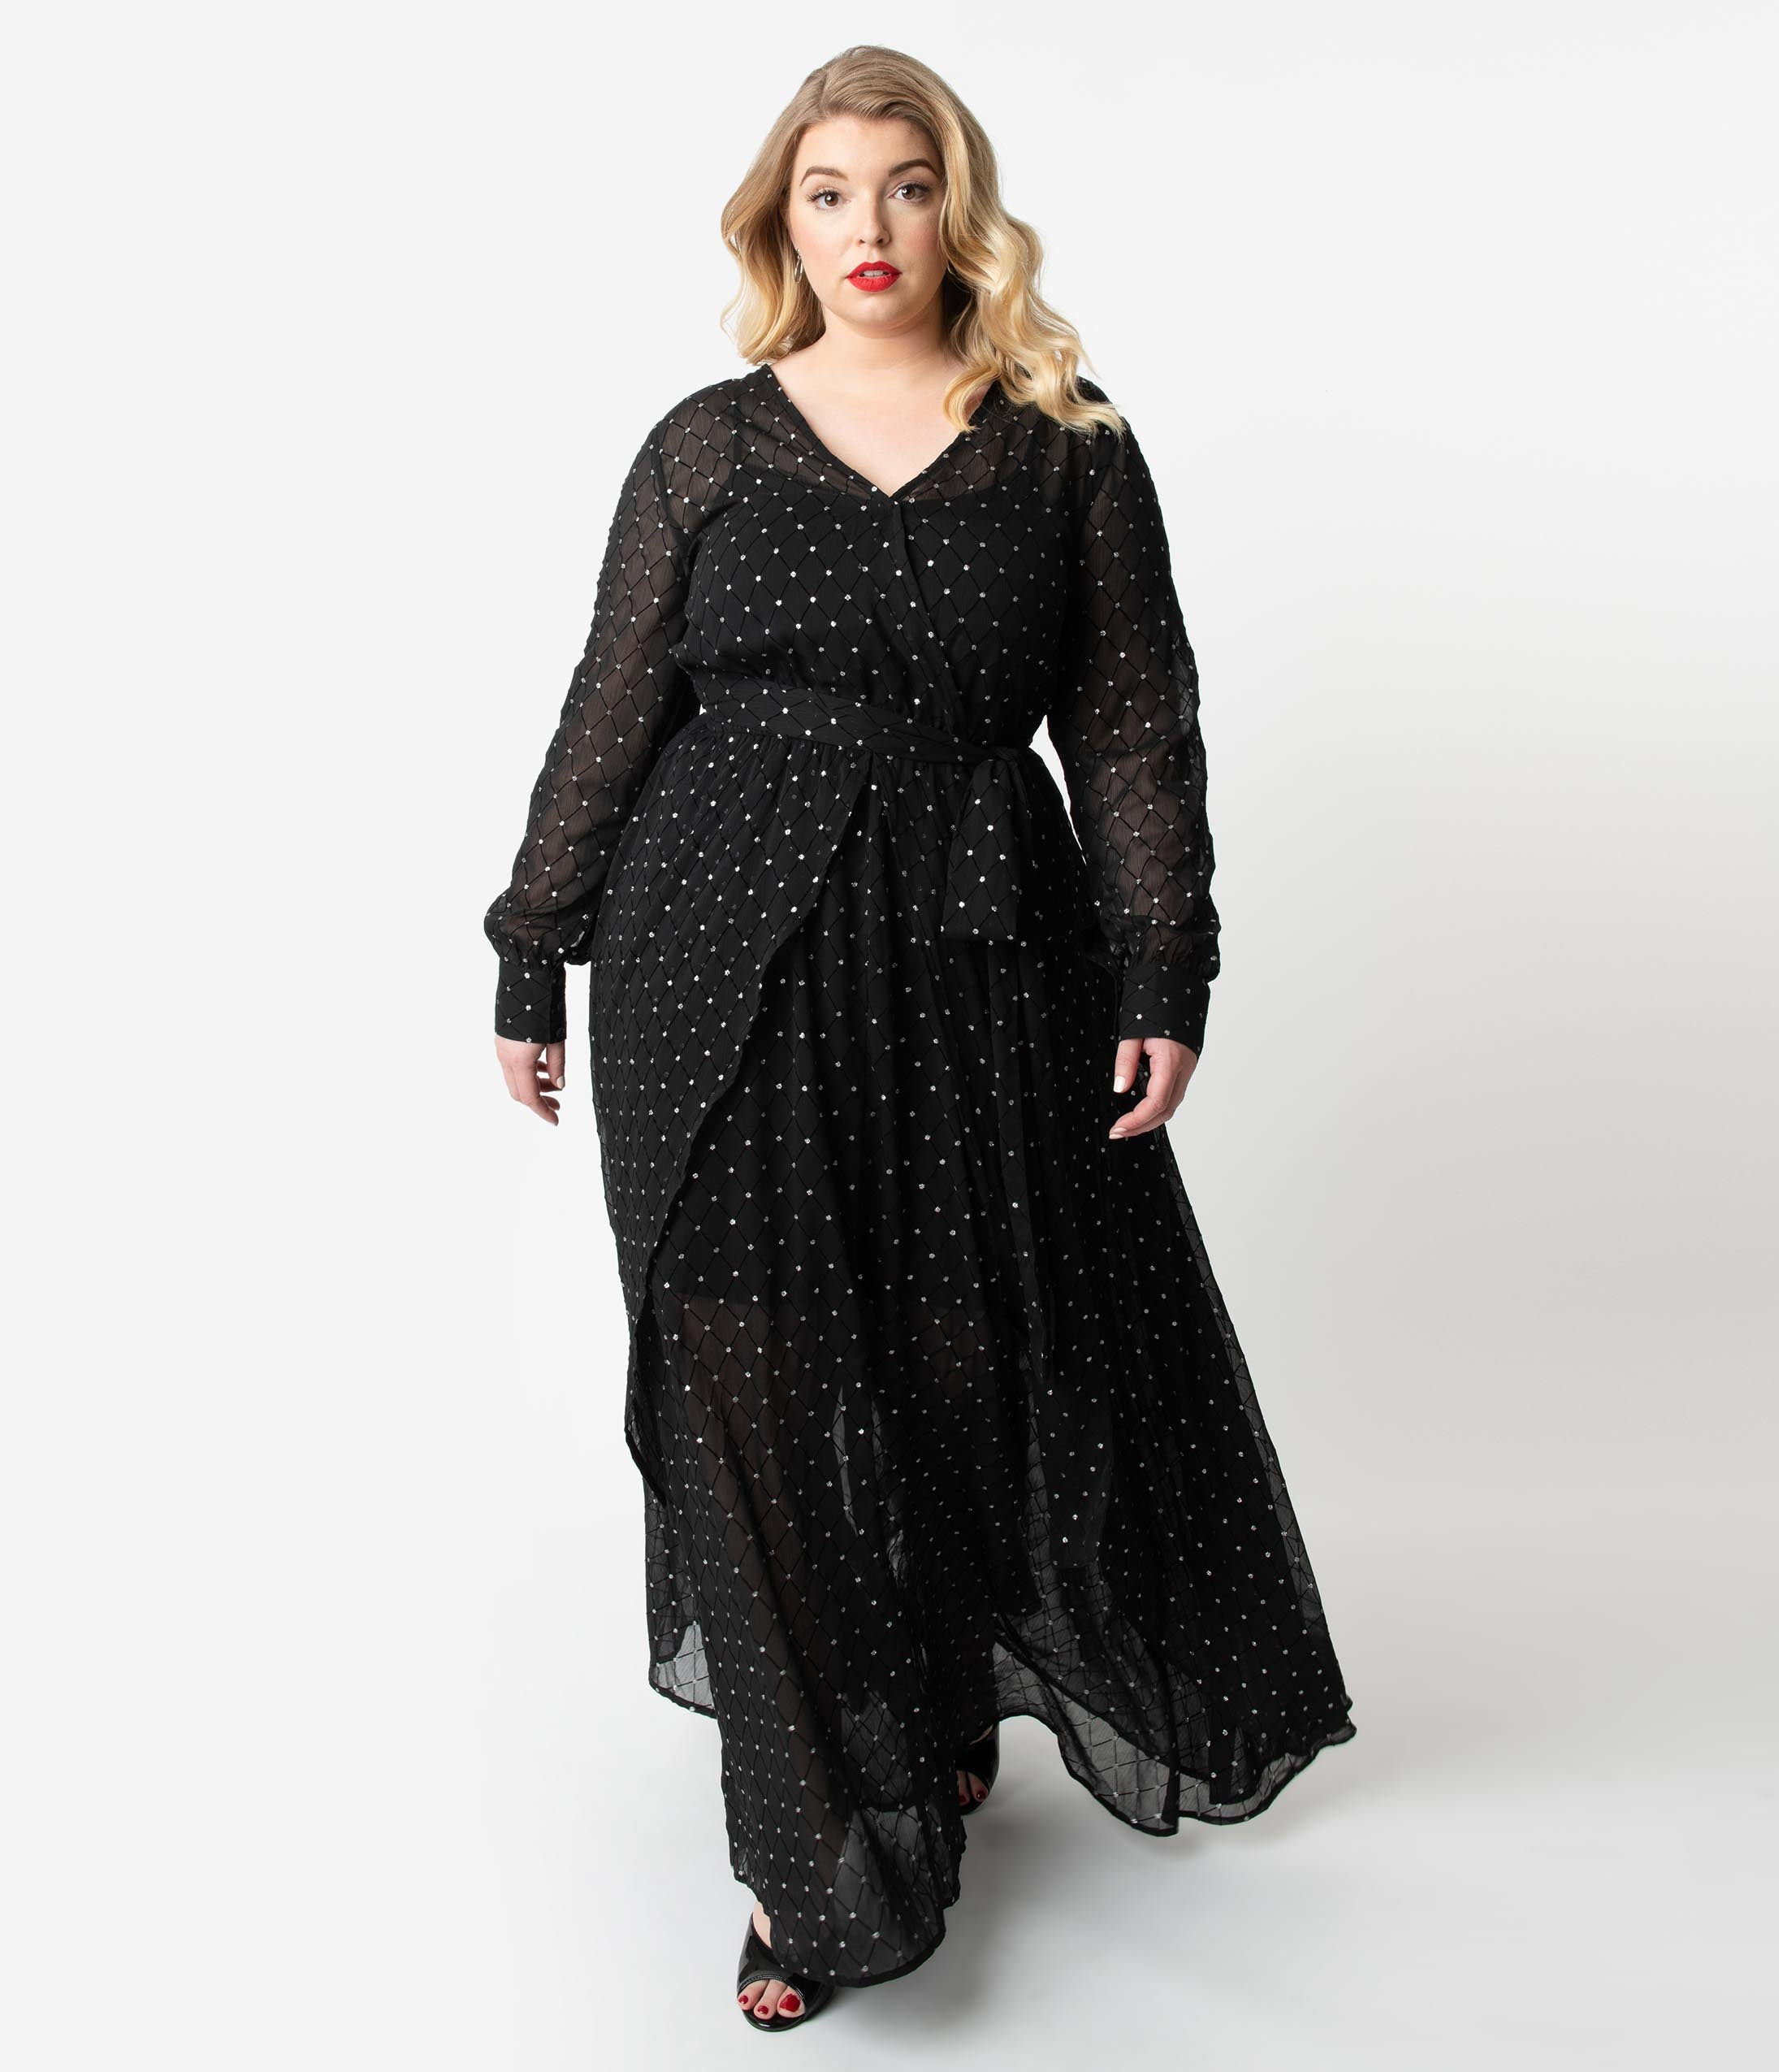 1920s Plus Size Flapper Dresses, Gatsby Dresses, Flapper Costumes Unique Vintage Plus Size Black  Silver Long Sleeve Farrah Maxi Dress $118.00 AT vintagedancer.com